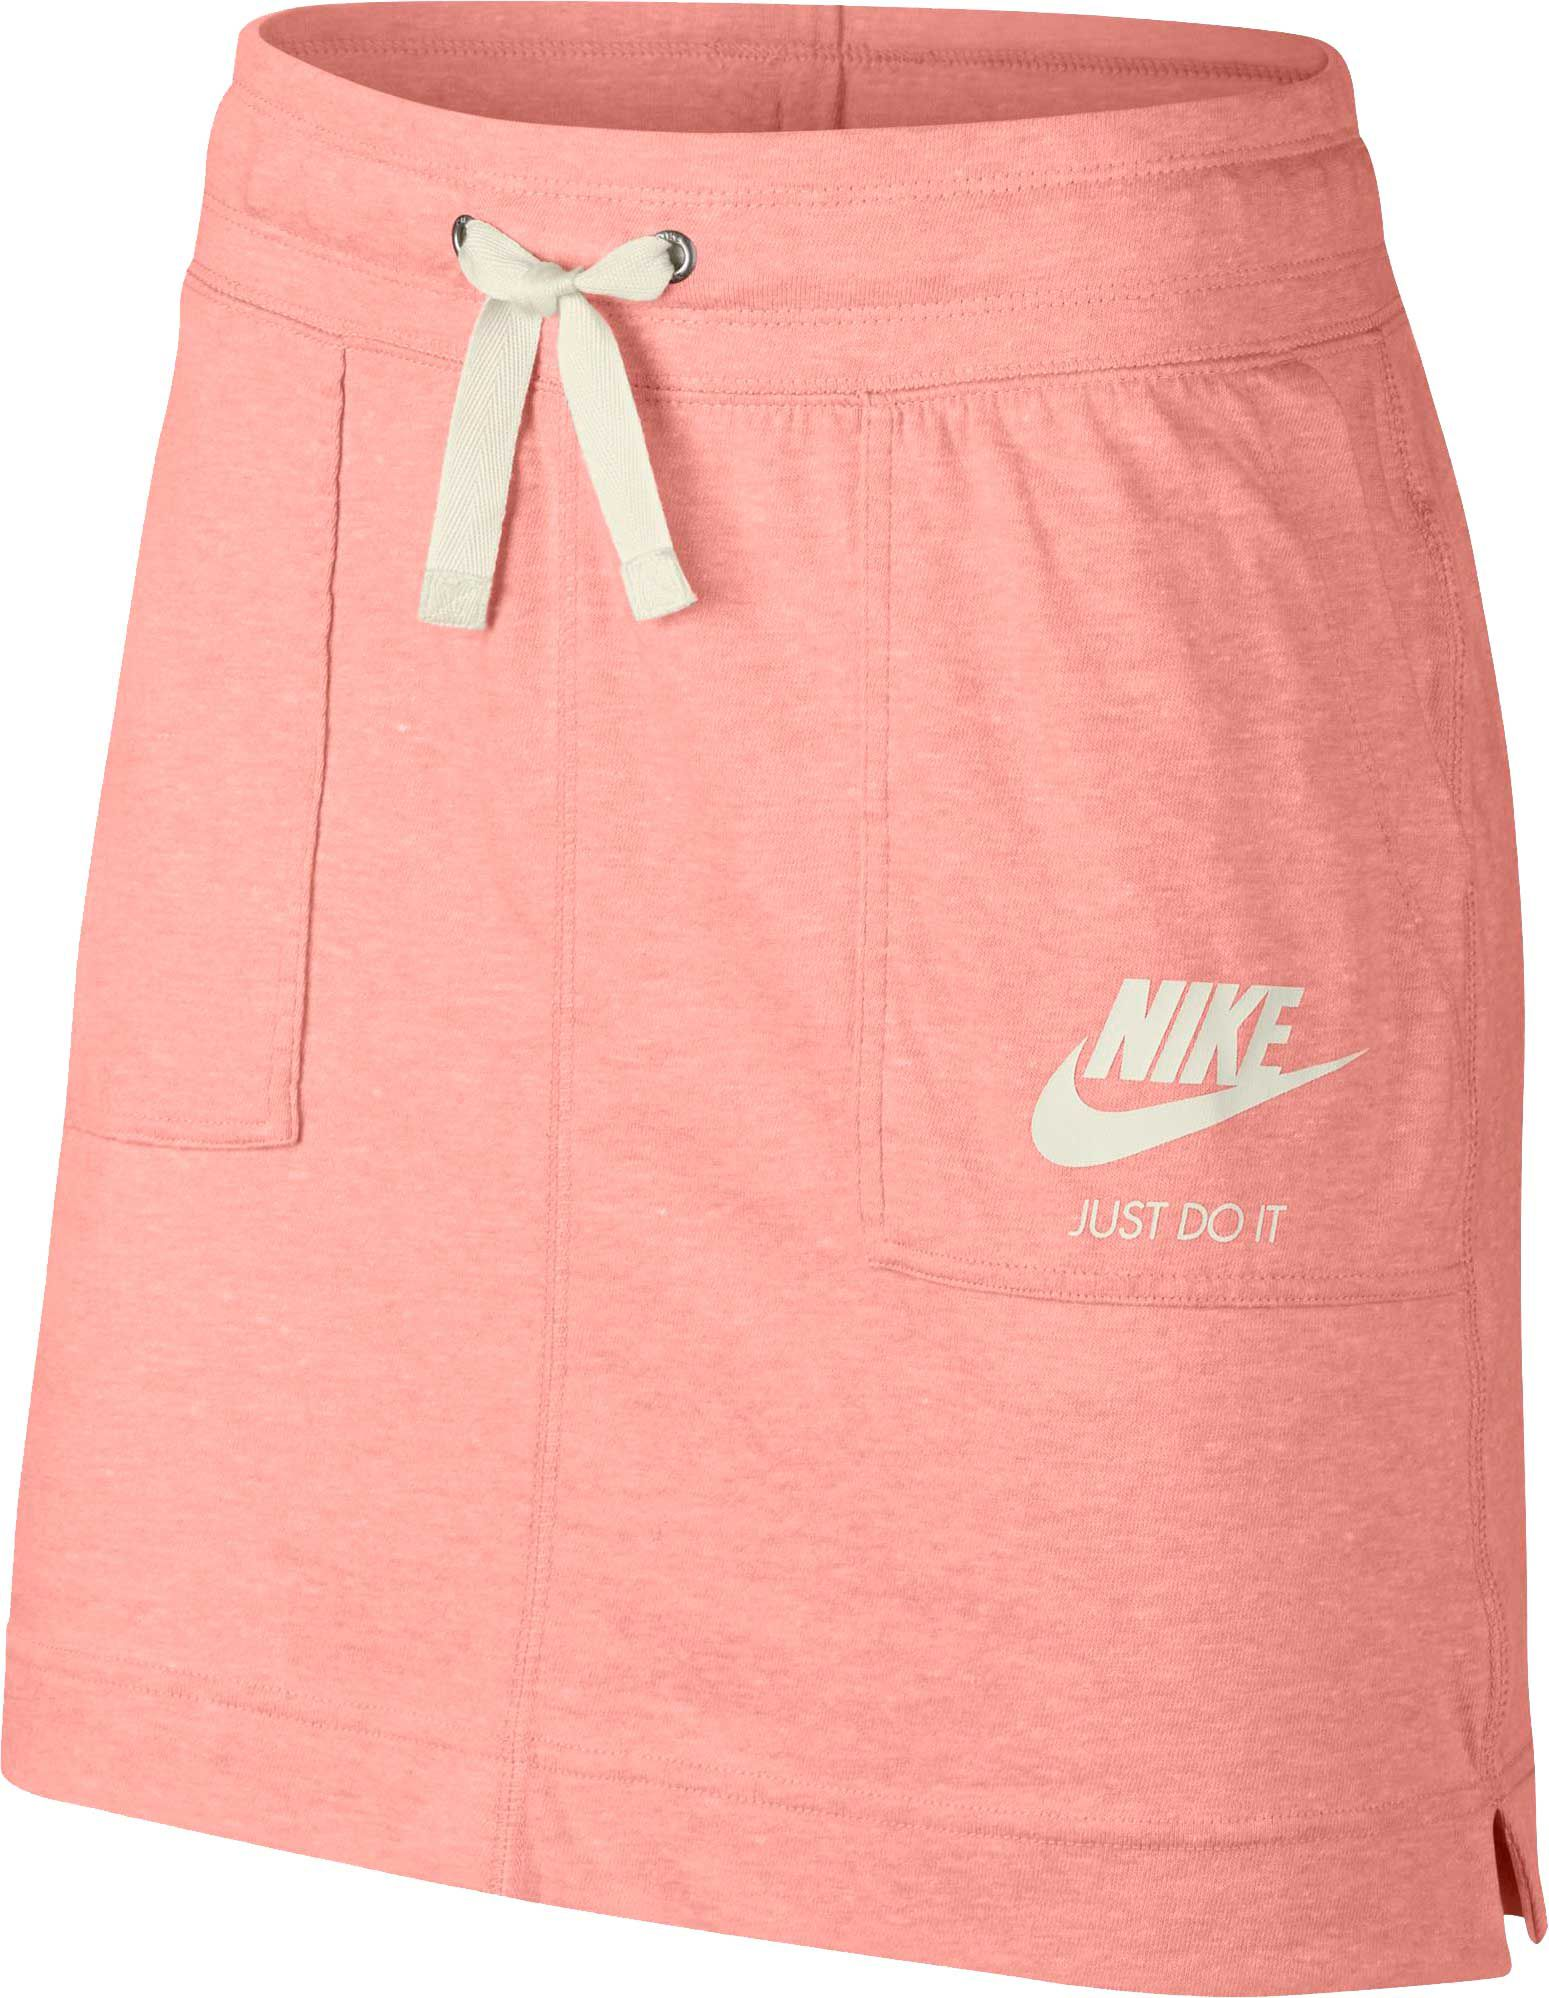 193808bc5b6 Nike Women's Sportswear Gym Vintage Skirt in 2019 | Products ...